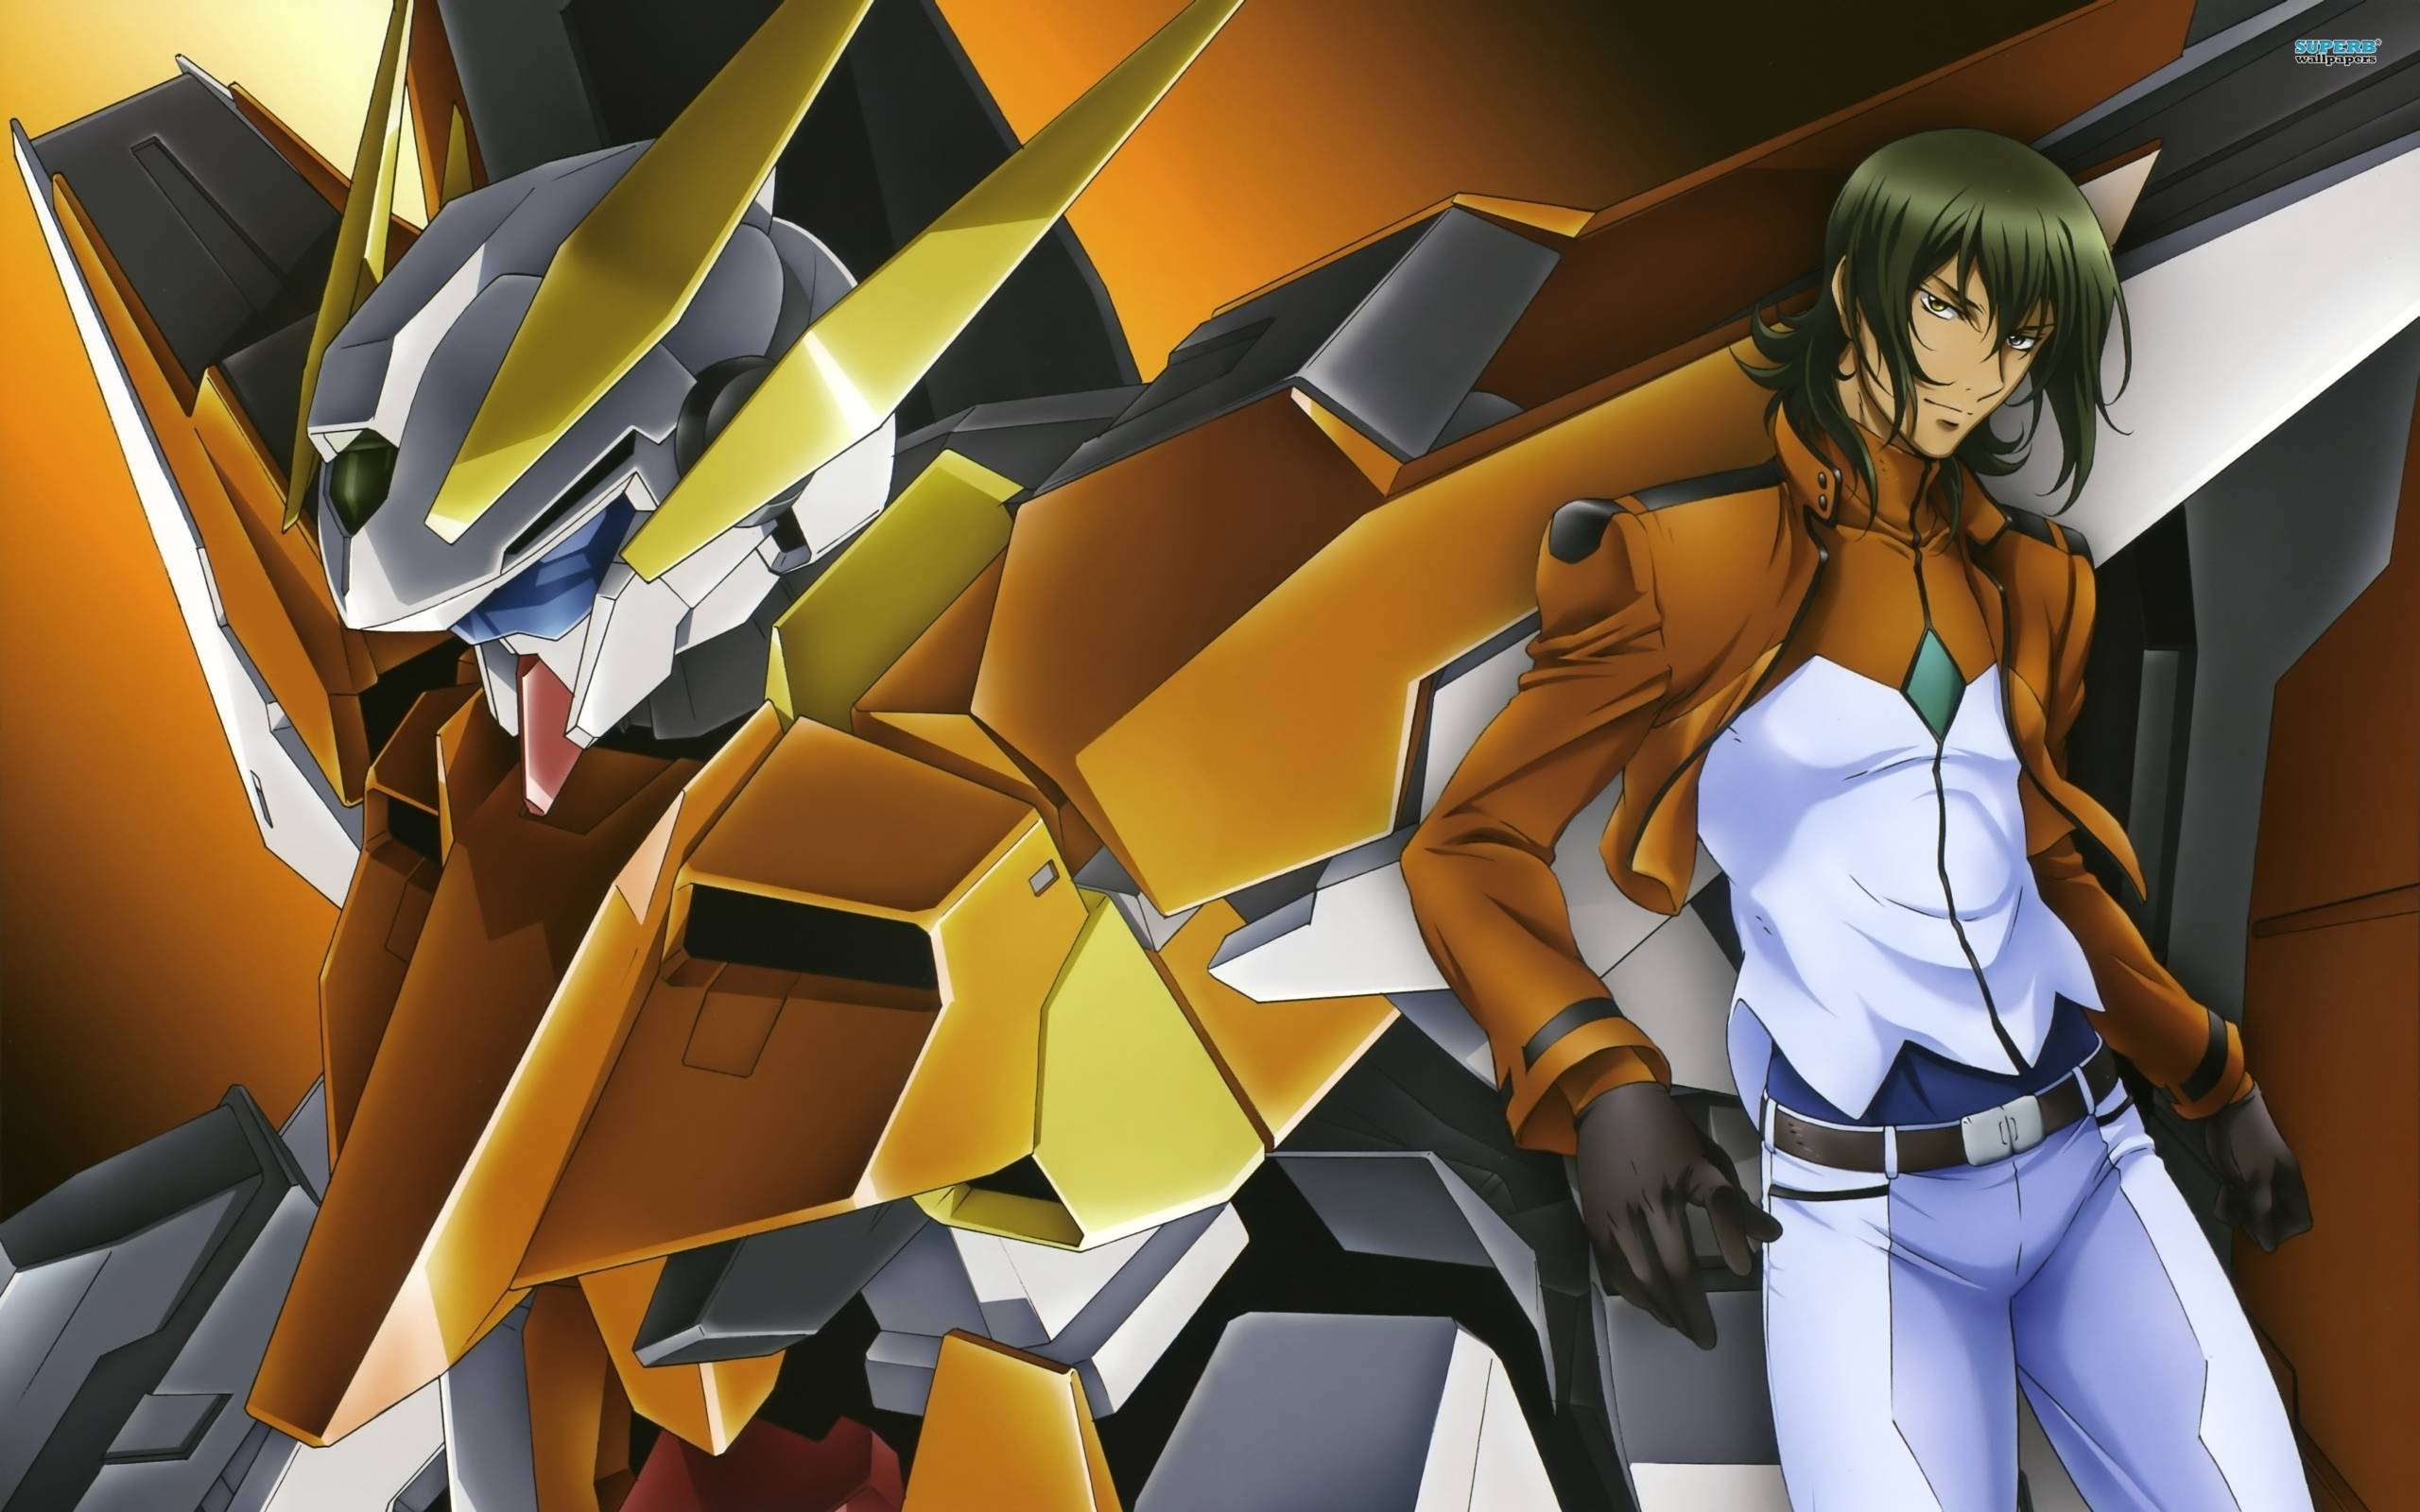 Mobile Suit Gundam 00 wallpaper   Anime wallpapers   7164 2560x1600